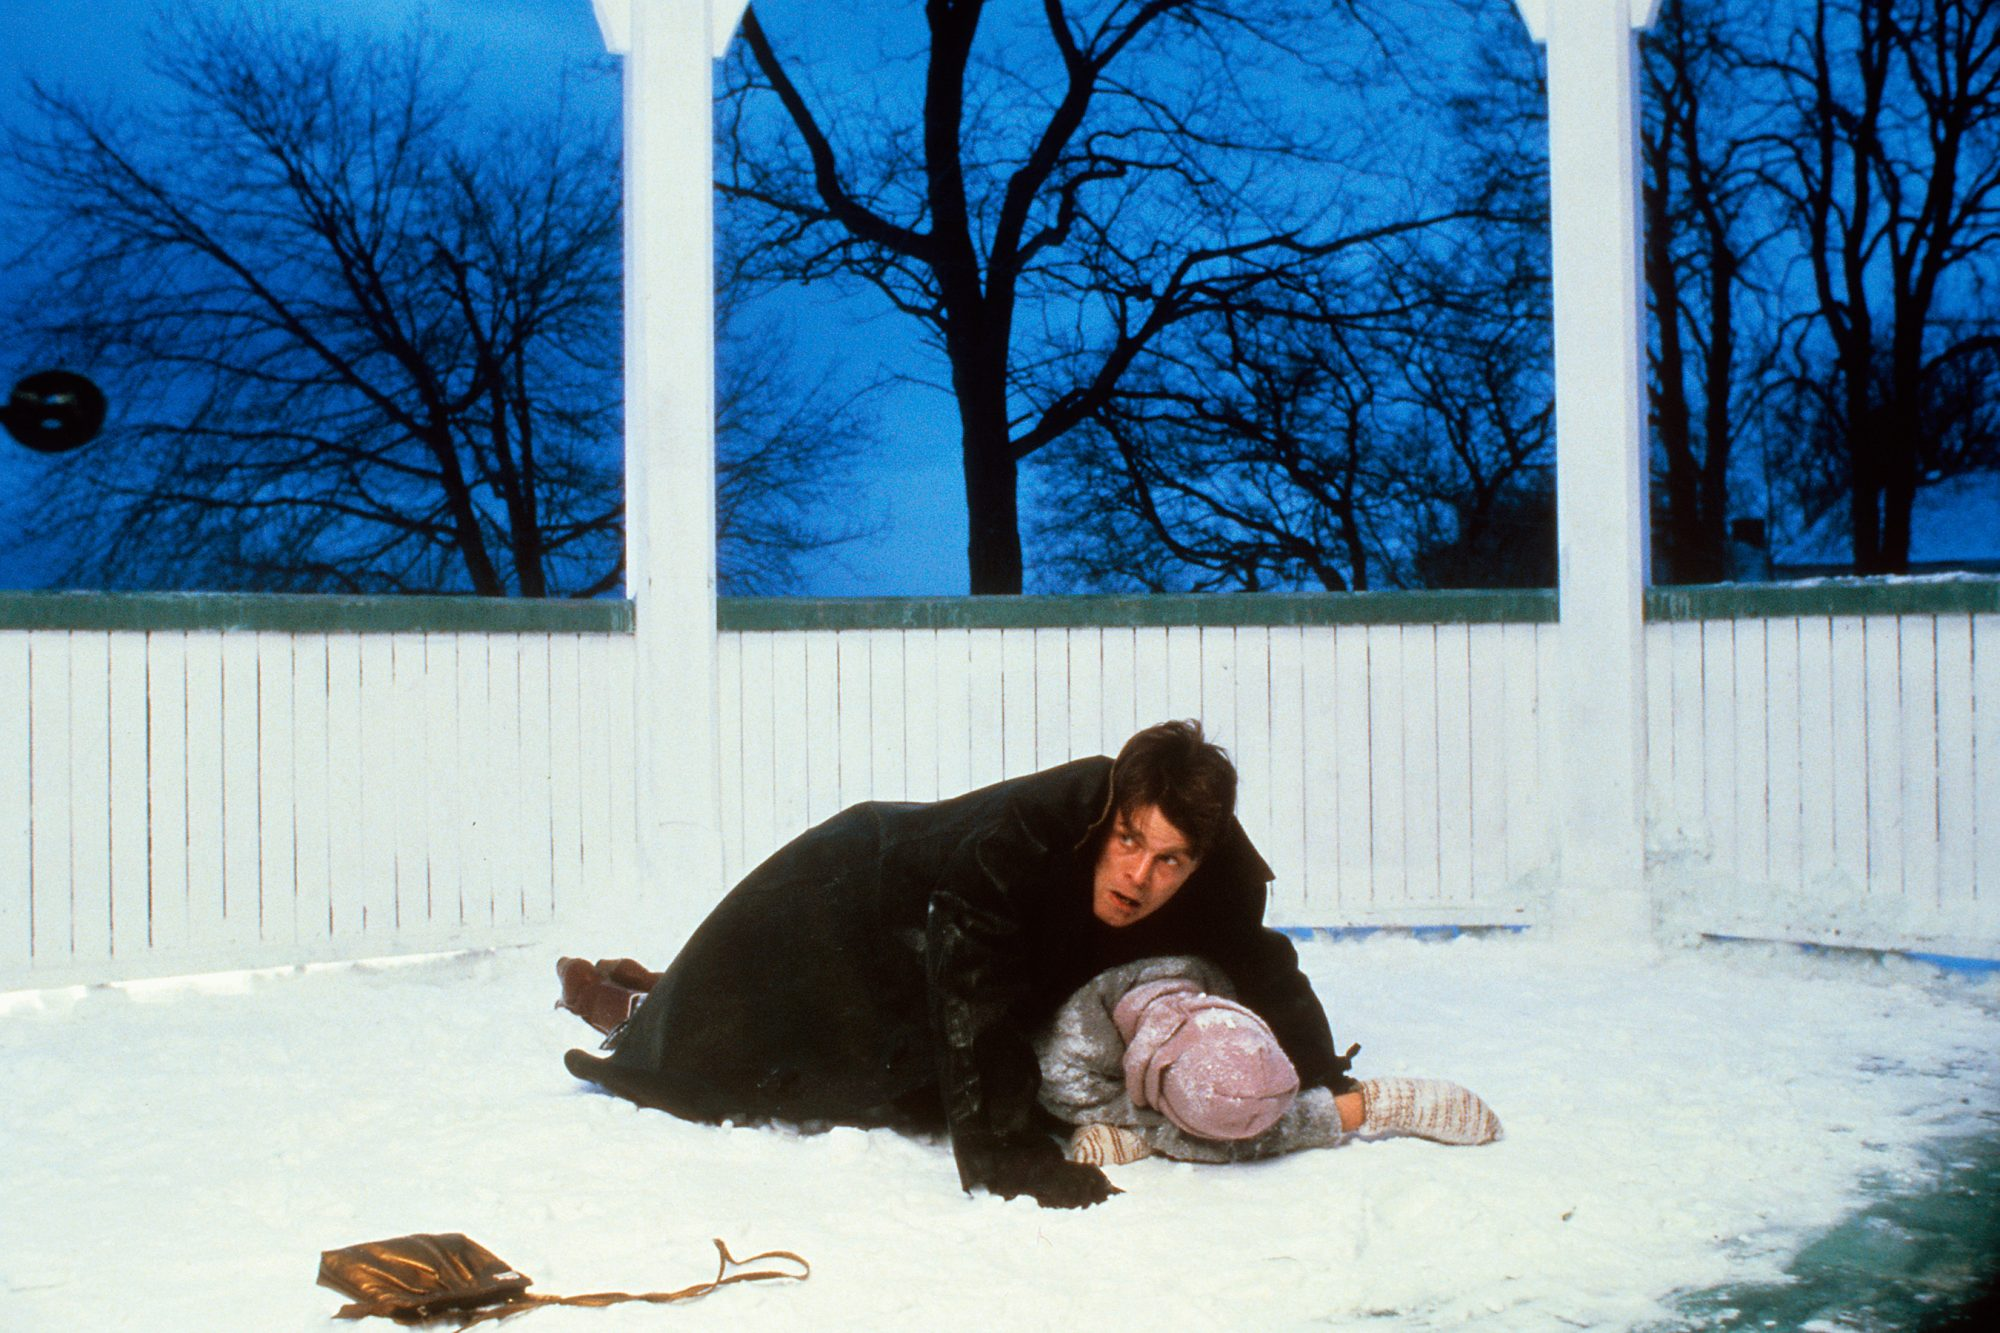 Nicholas Campbell And Roberta Weiss In 'The Dead Zone'